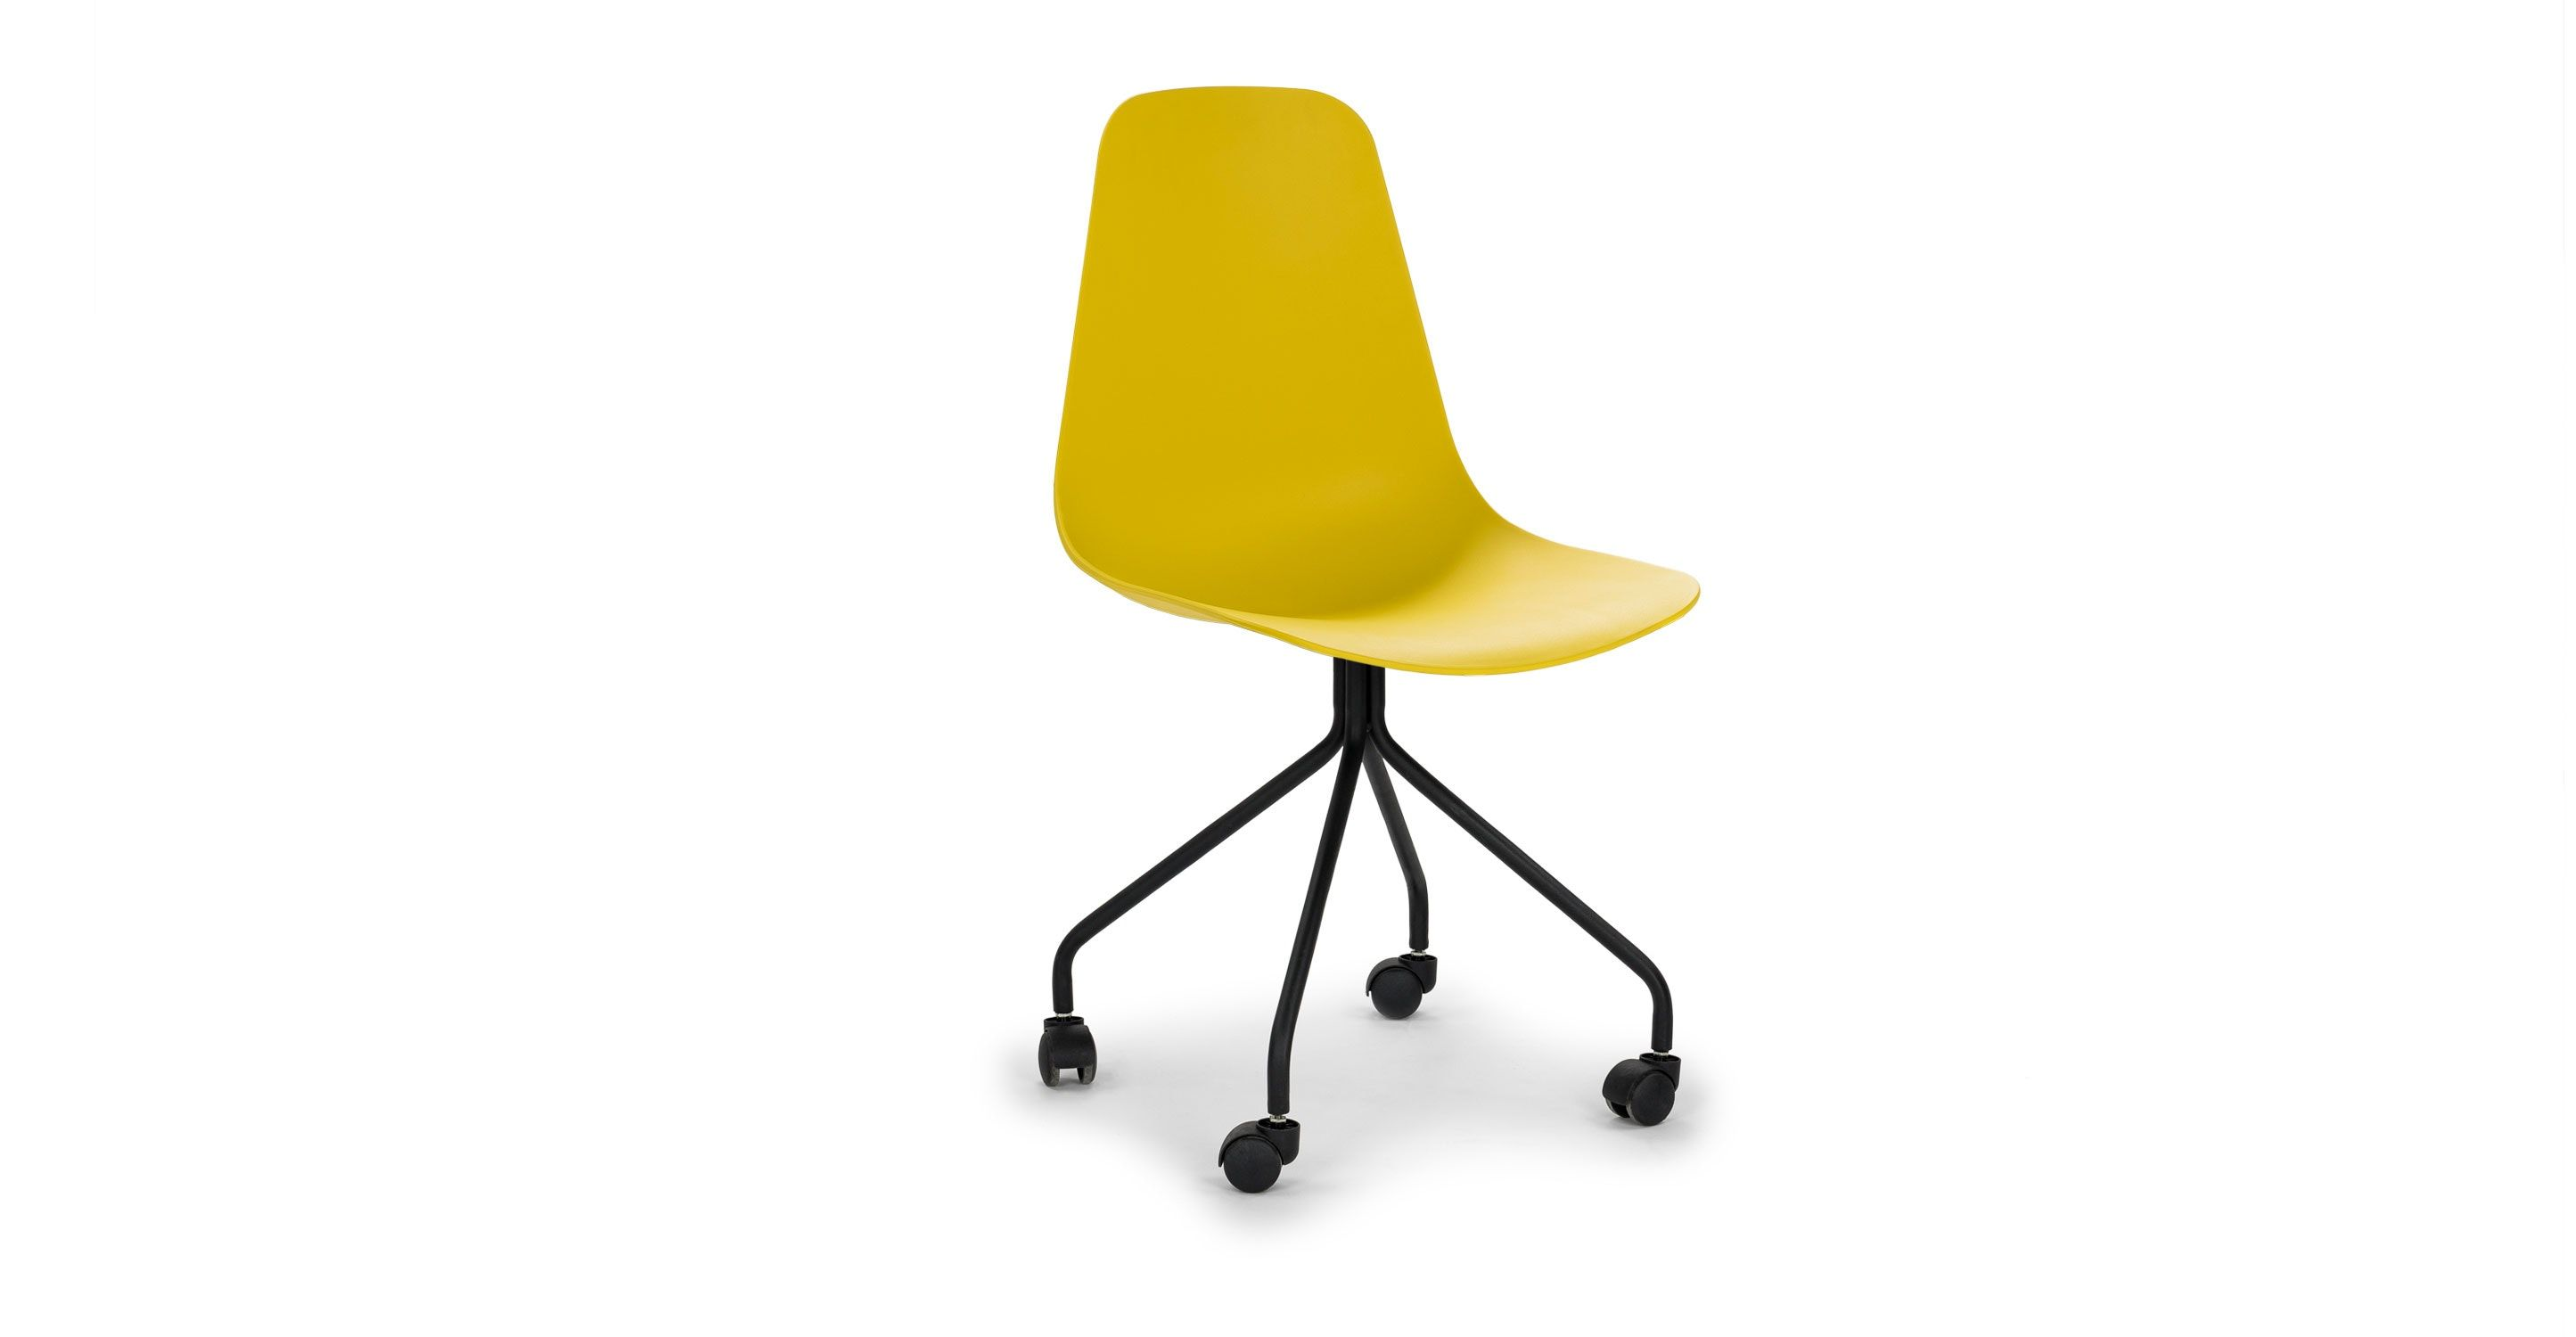 Svelti Daisy Yellow Office Chair Contemporary Office Chairs